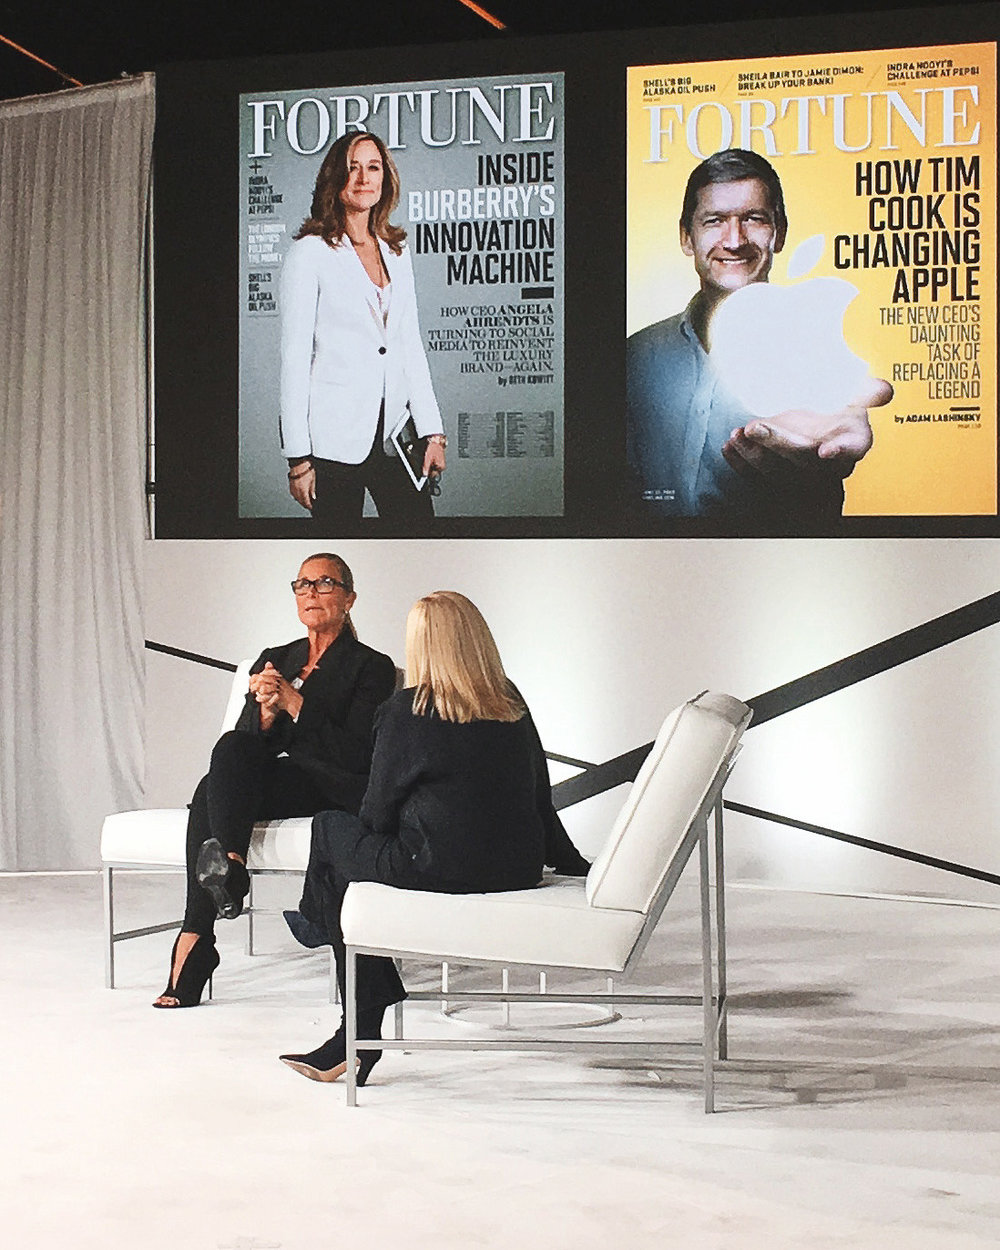 Angela Ahrendts was my favorite speaker. Such a smart woman.